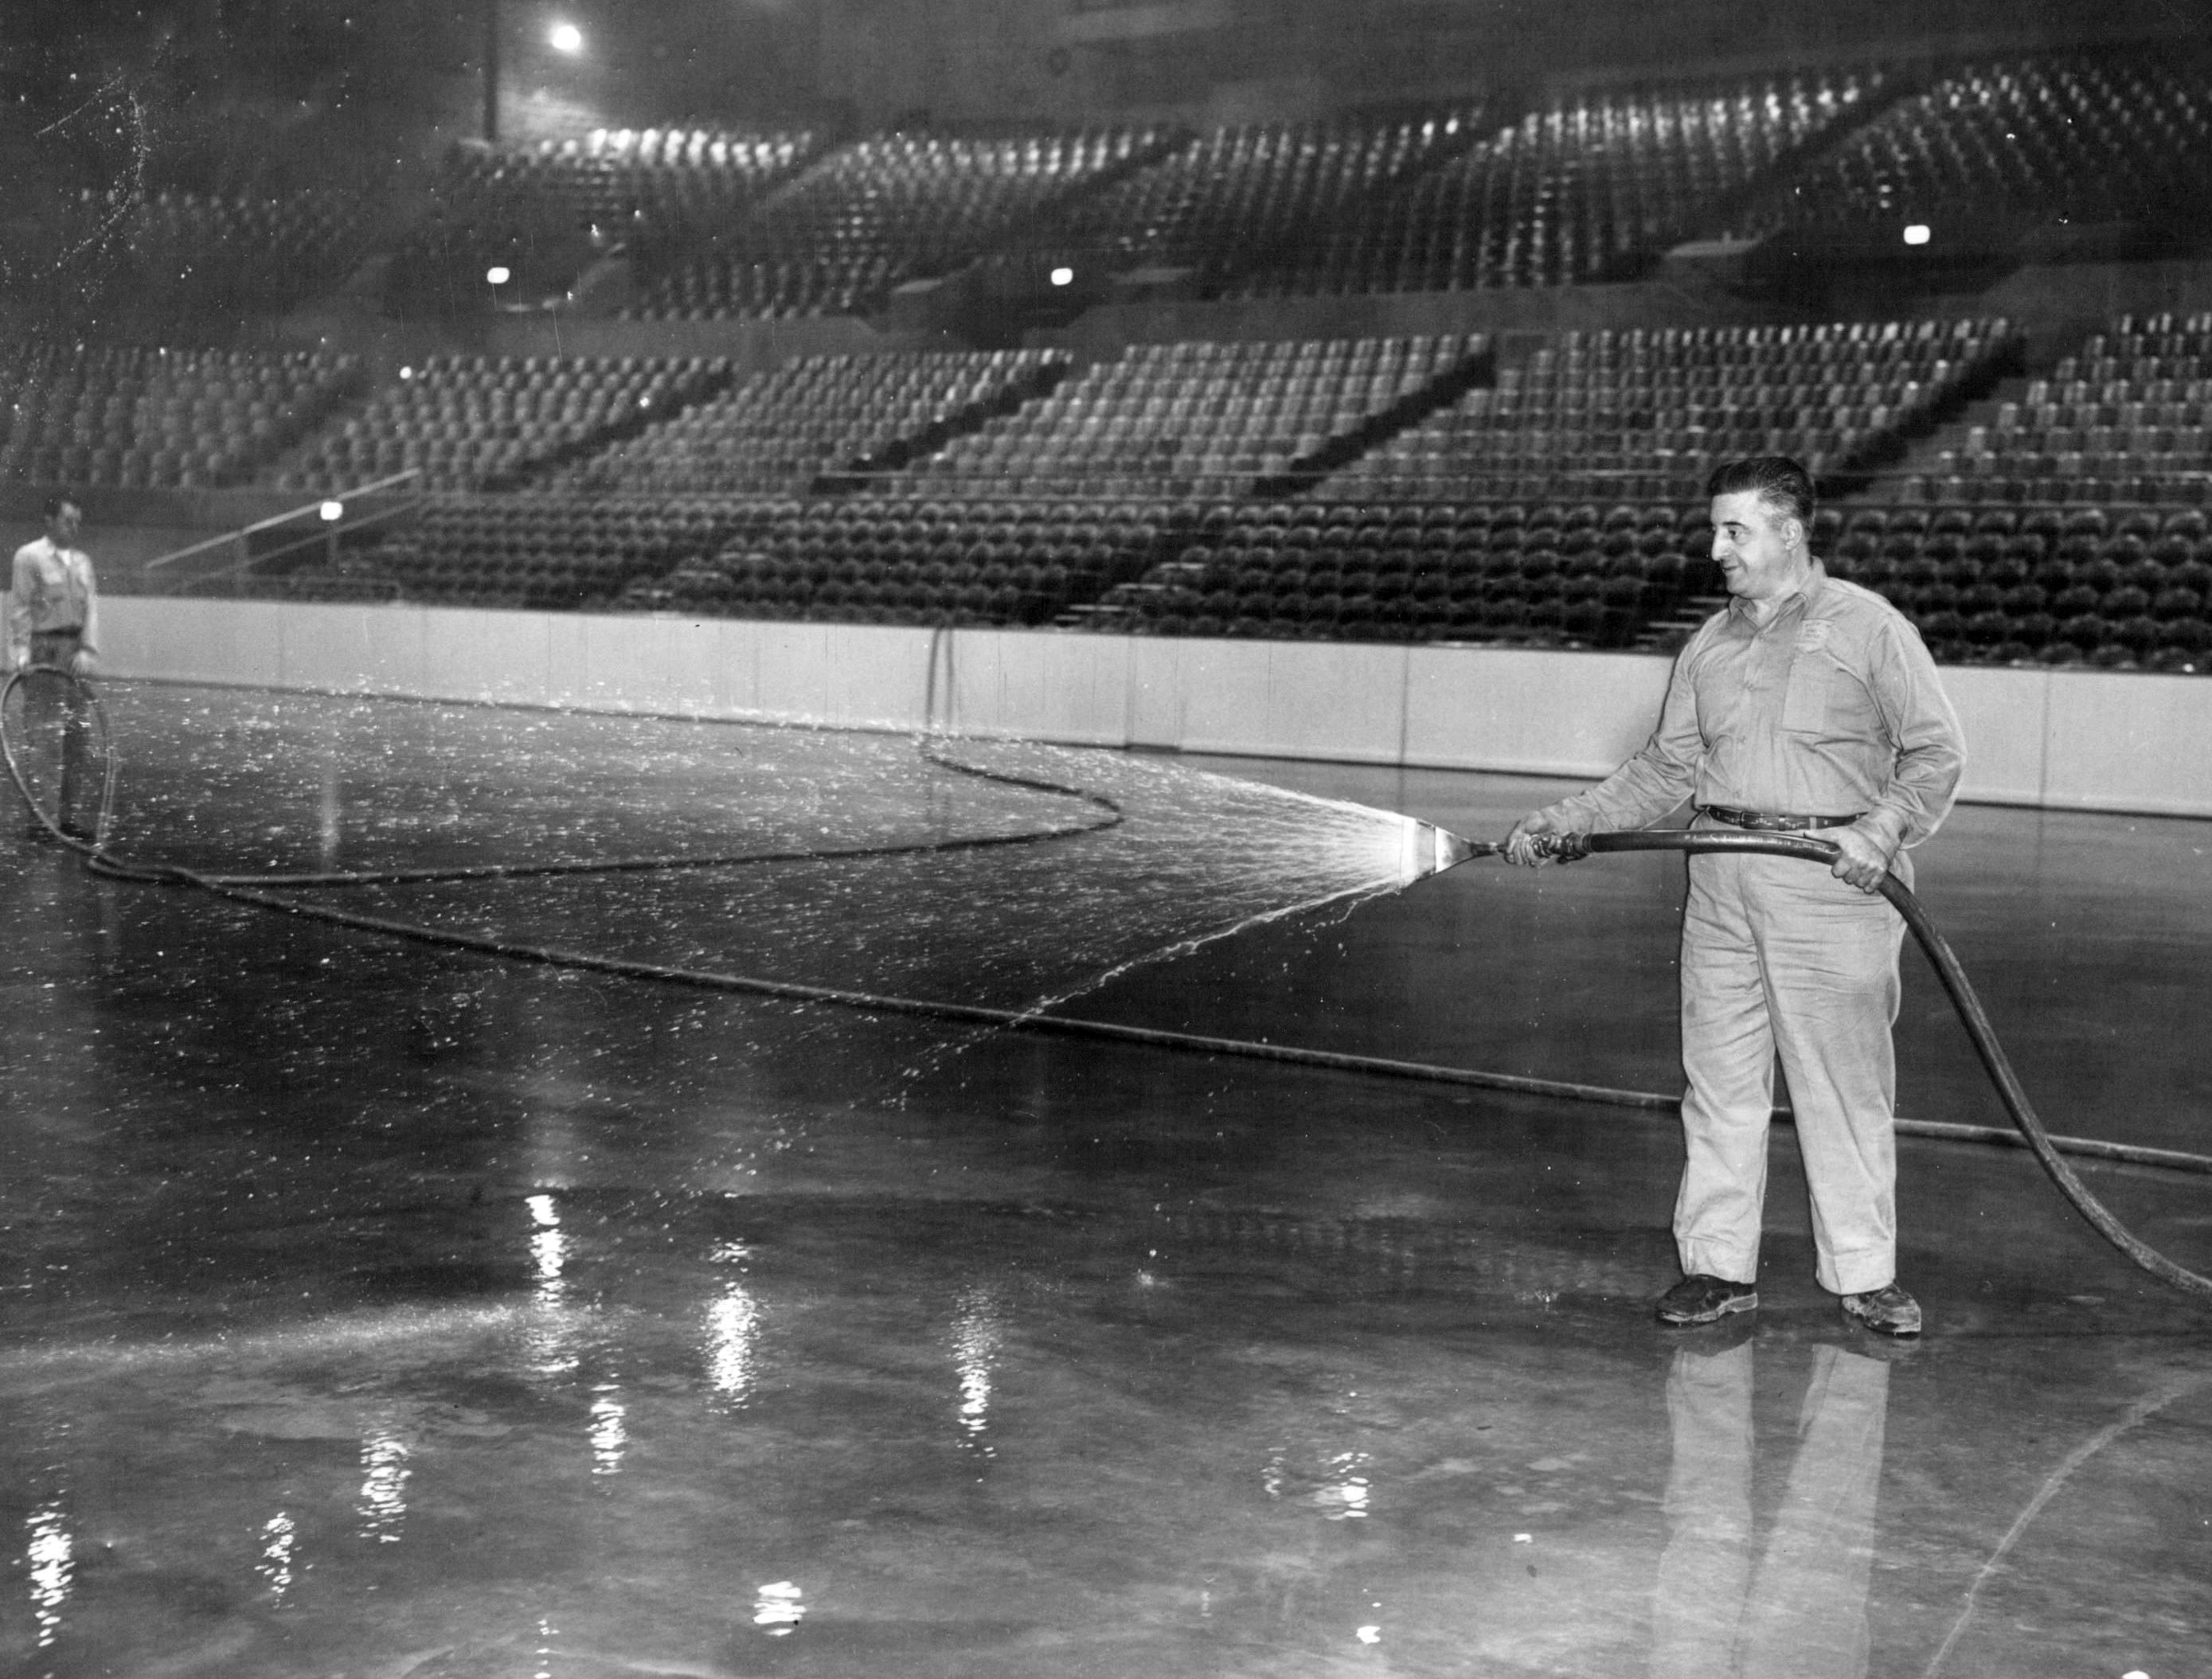 In this photo from 1955, Joseph DiPaulo sprays water in the first trial of ice-making equipment at the Community War Memorial.